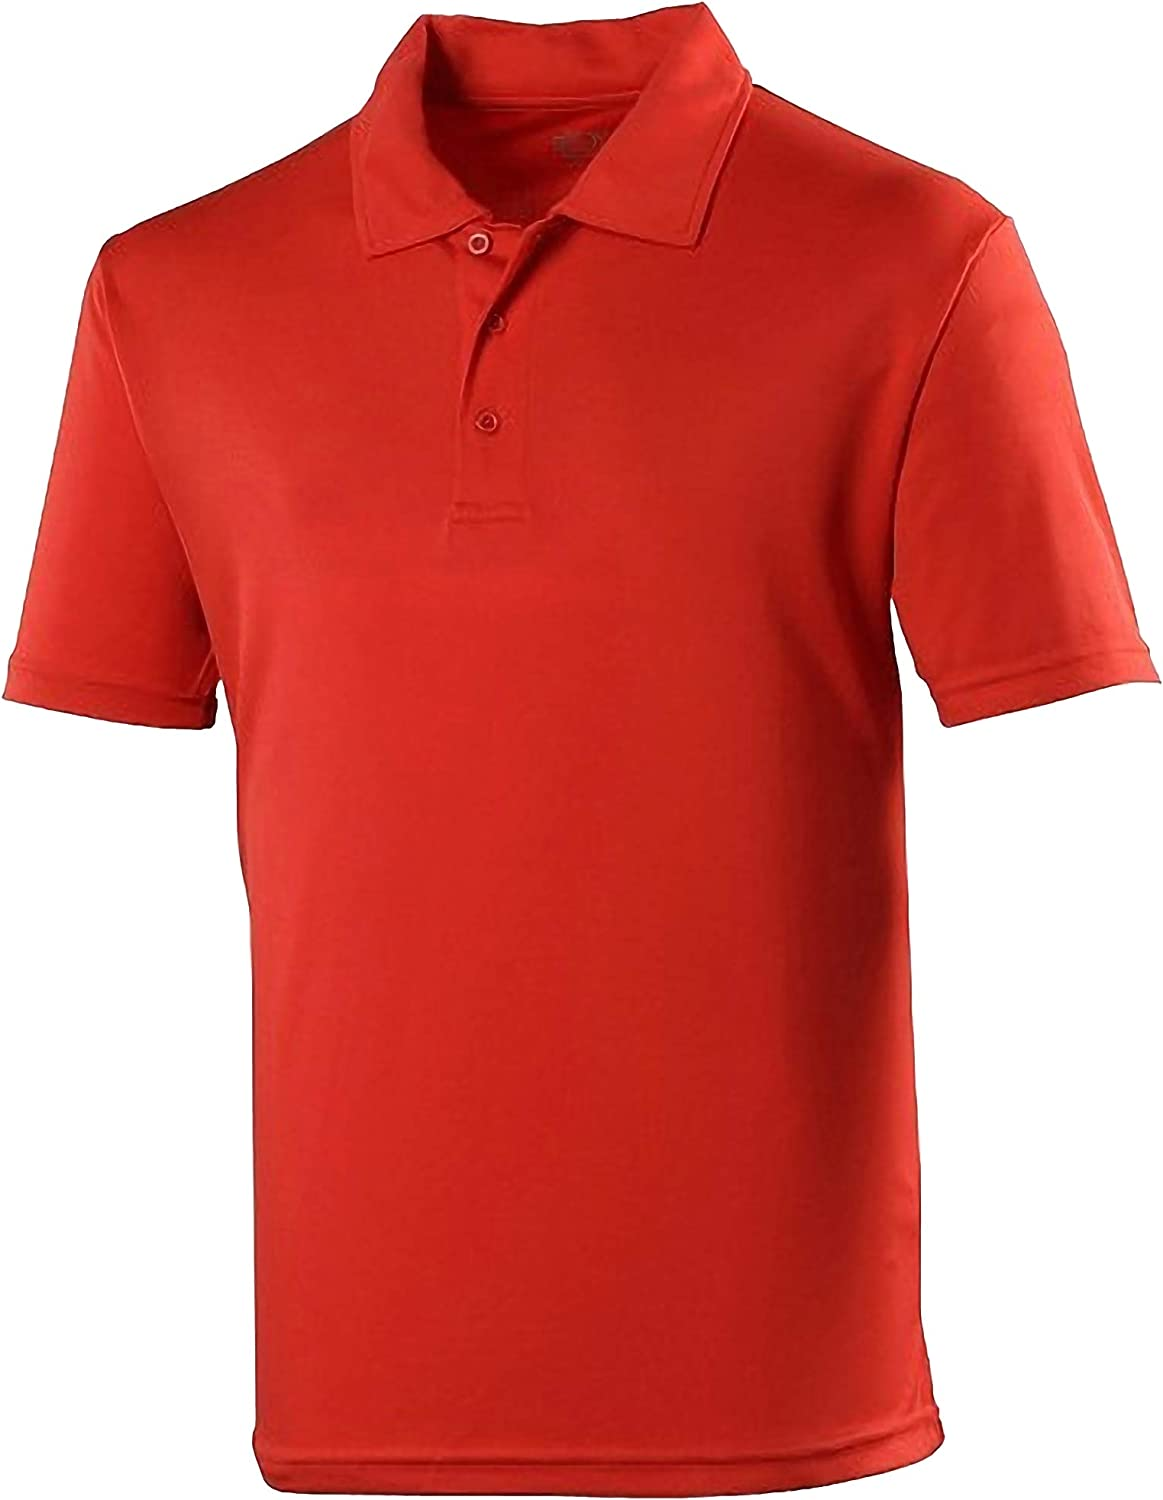 JUST COOL Kinder Unisex Sport Polo Shirt